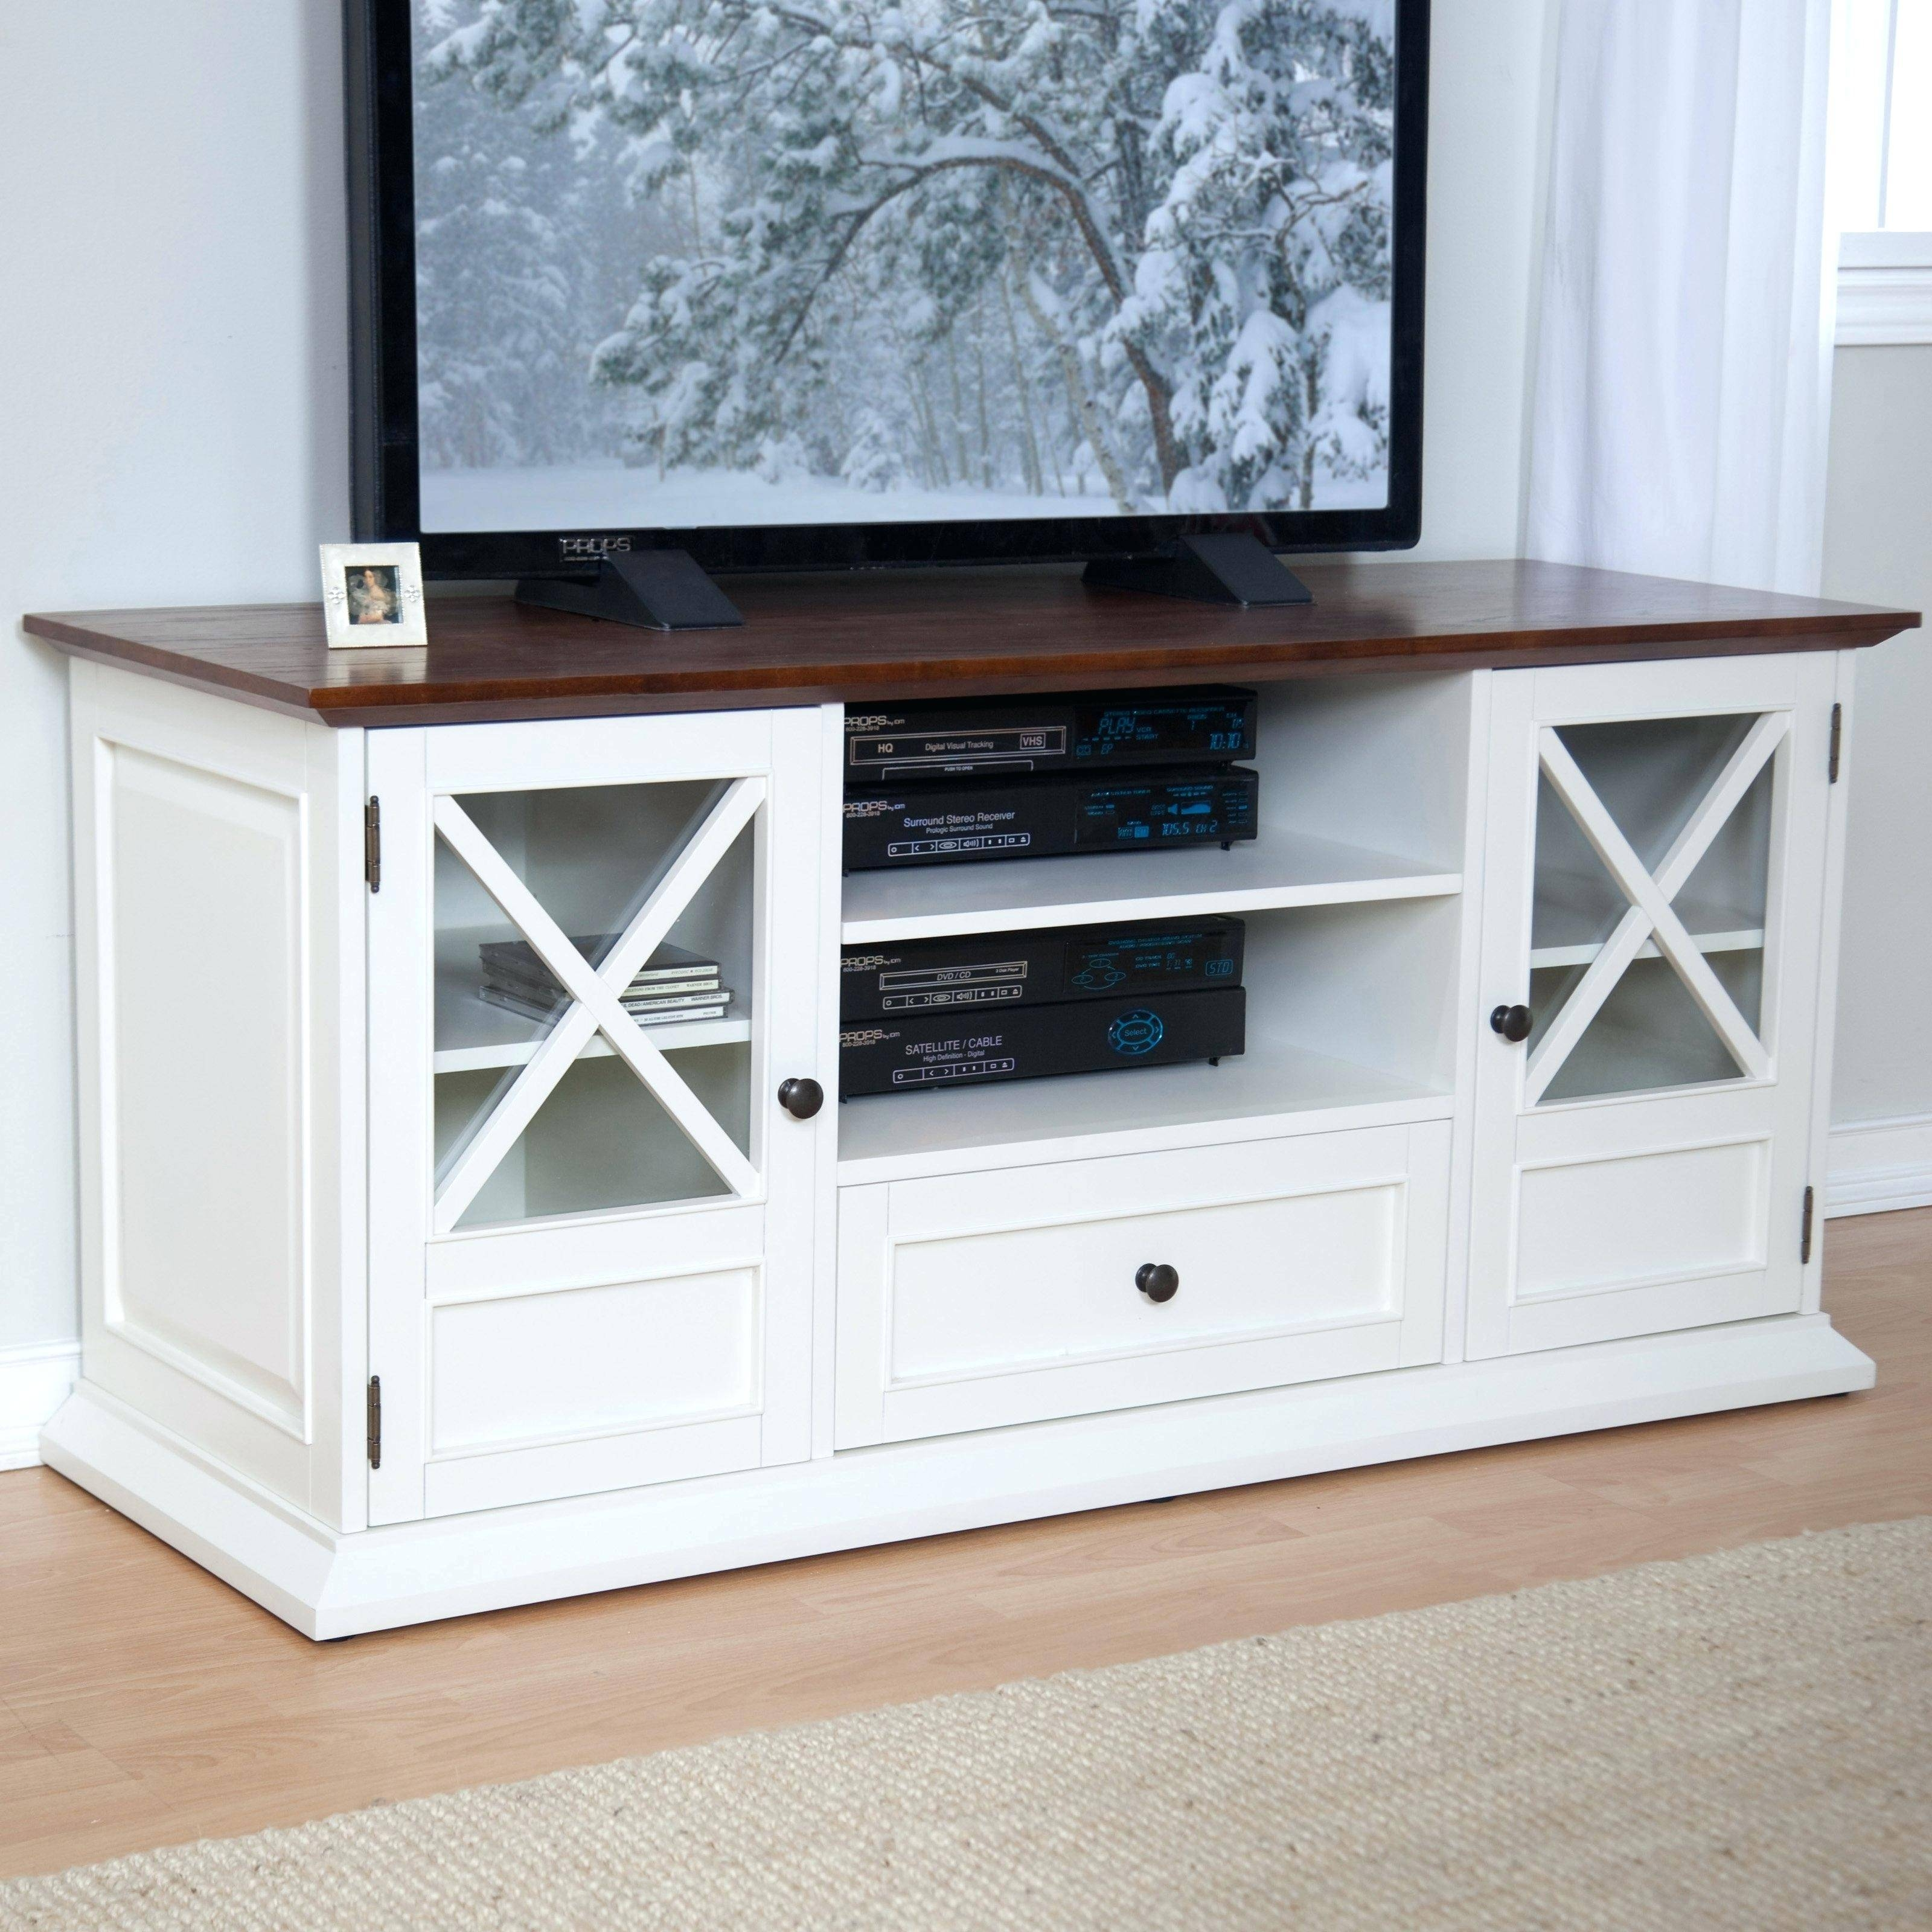 Tv Stand: Compact Single Shelf Tv Stand Design. Furniture Design regarding Single Shelf Tv Stands (Image 13 of 15)